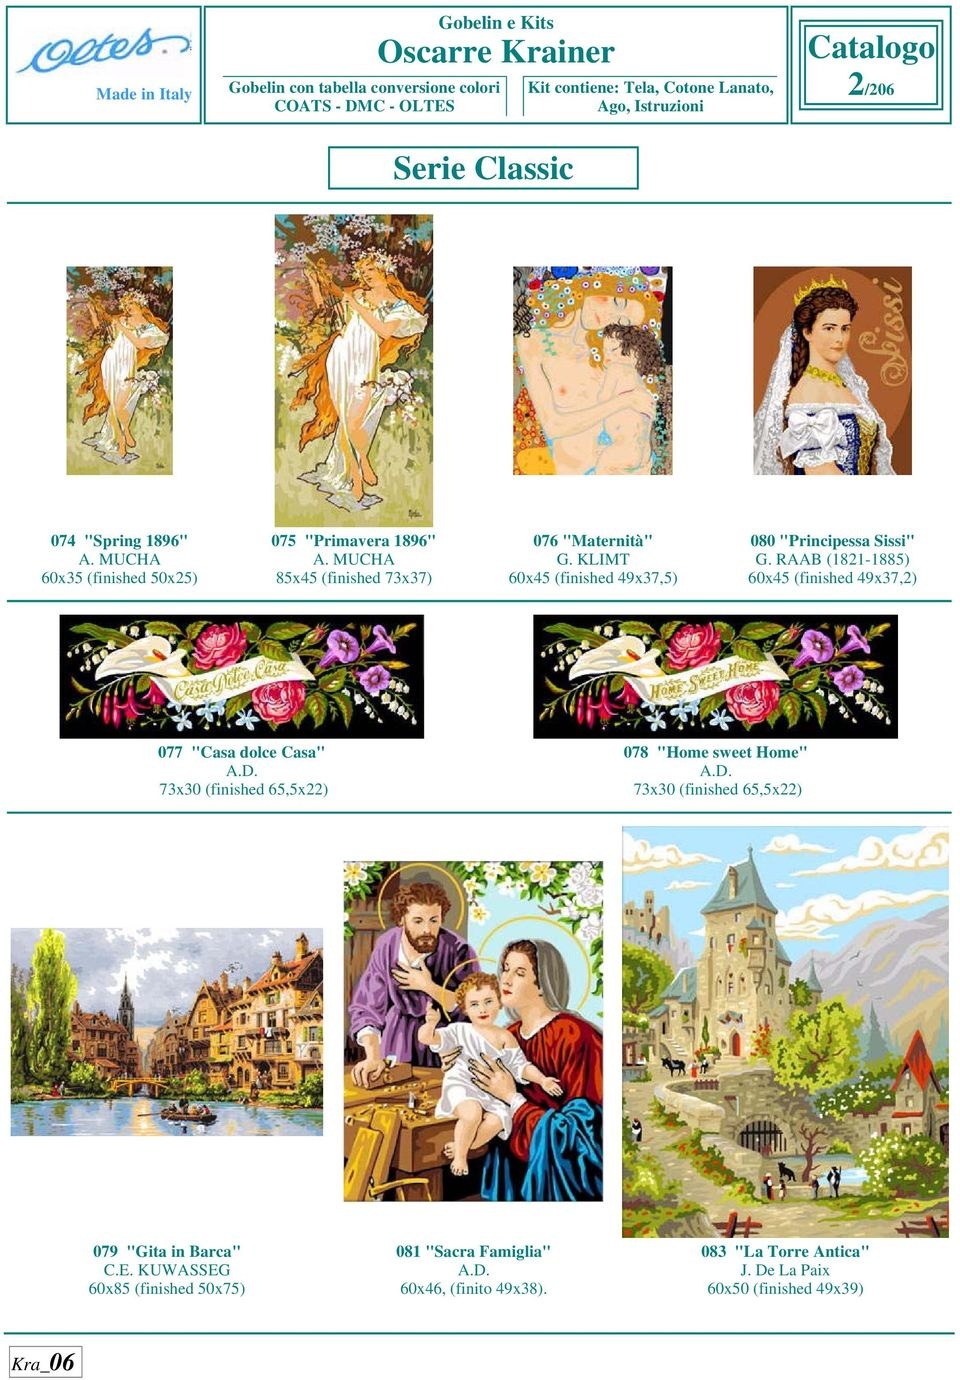 "RAAB (1821-1885) 60x45 (finished 49x37,2) 077 ""Casa dolce Casa"" 73x30 (finished 65,5x22) 078 ""Home sweet Home"" 73x30"